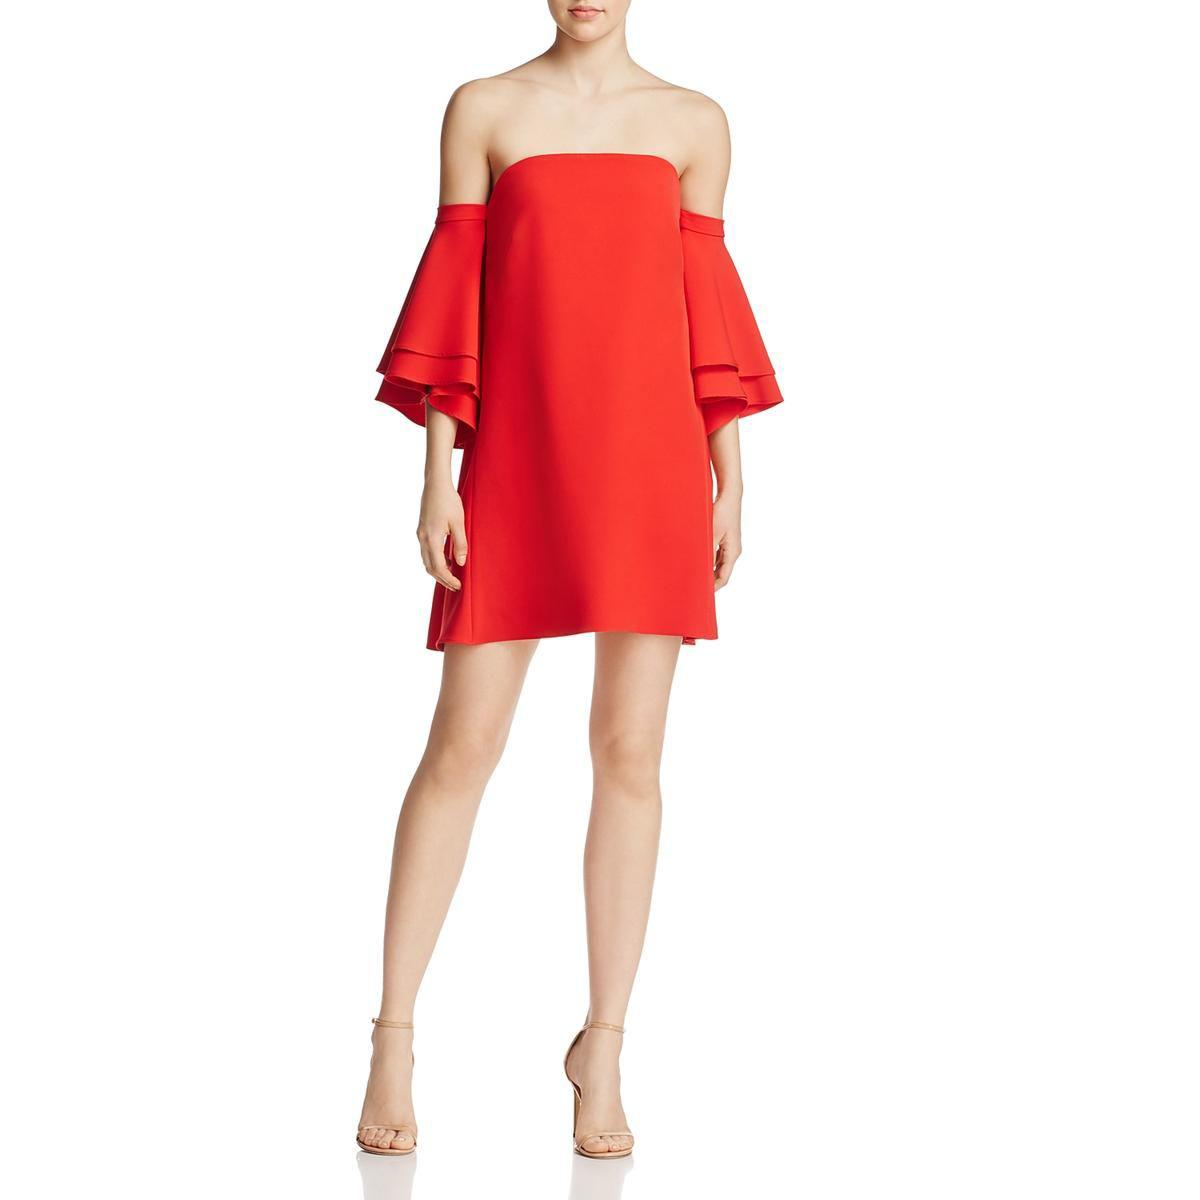 Lyst - Milly Womens Mila Off-the-shoulders Party Cocktail Dress in Red 12d8617690